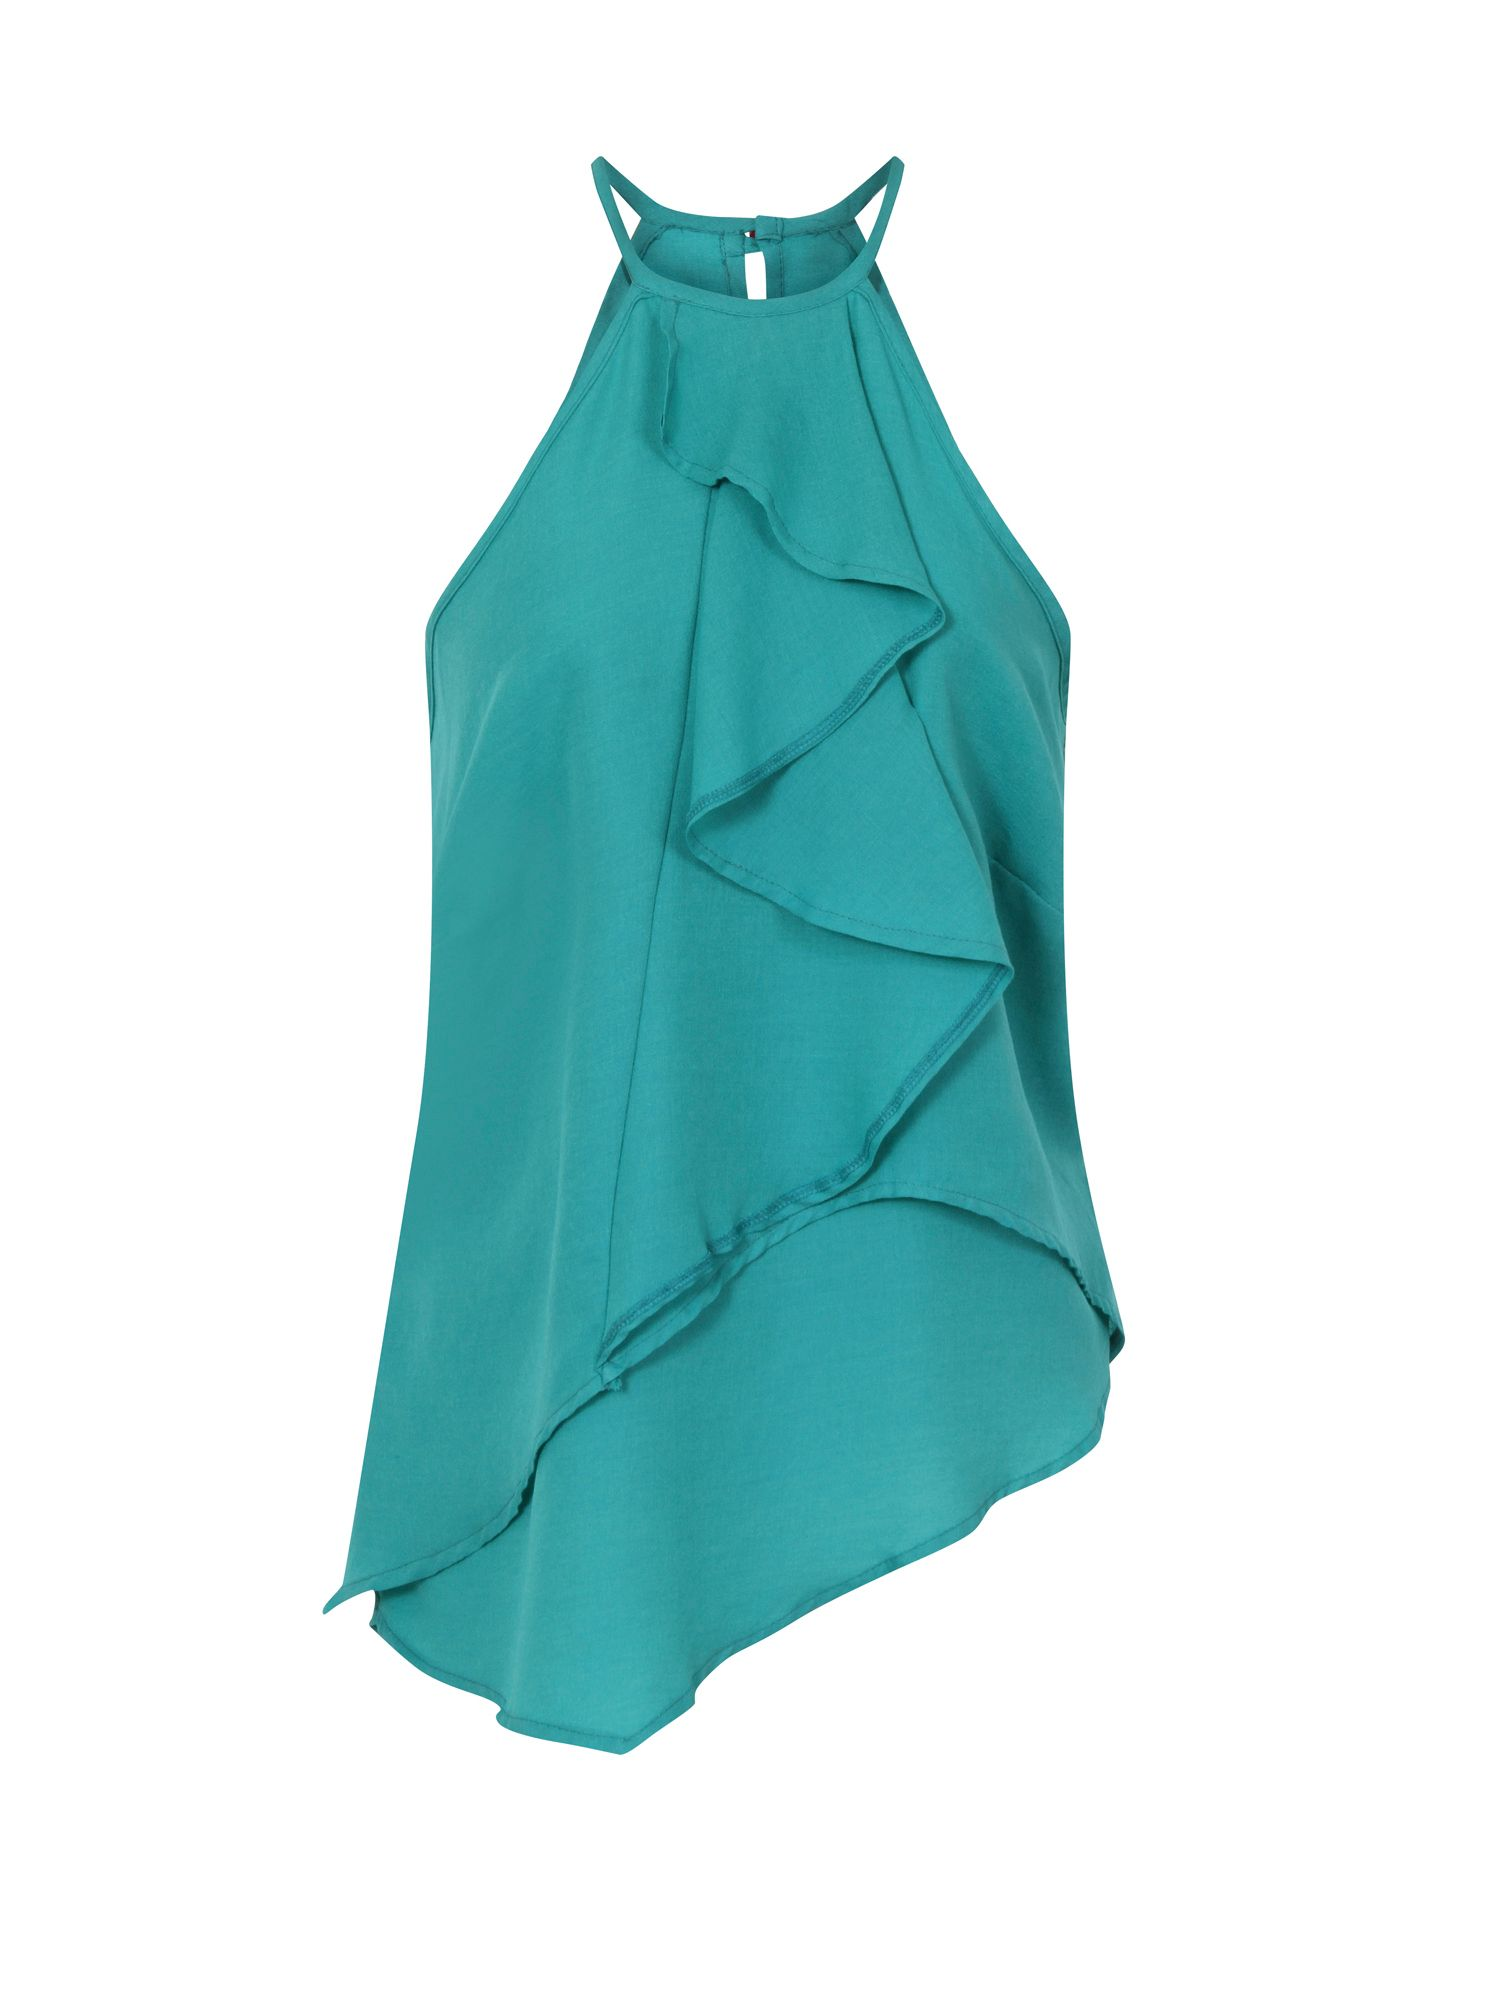 HotSquash Ruffle Halter Neck Top in Clever Fabric, Turquoise